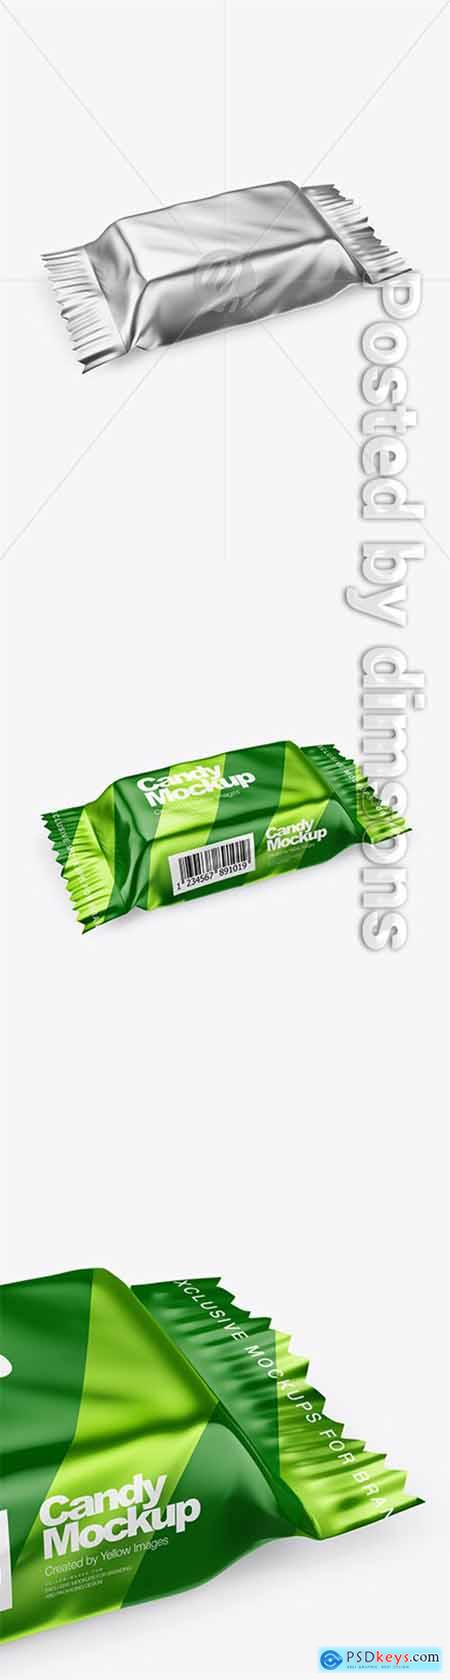 Metallic Candy Package Mockup - Half Side View 30122